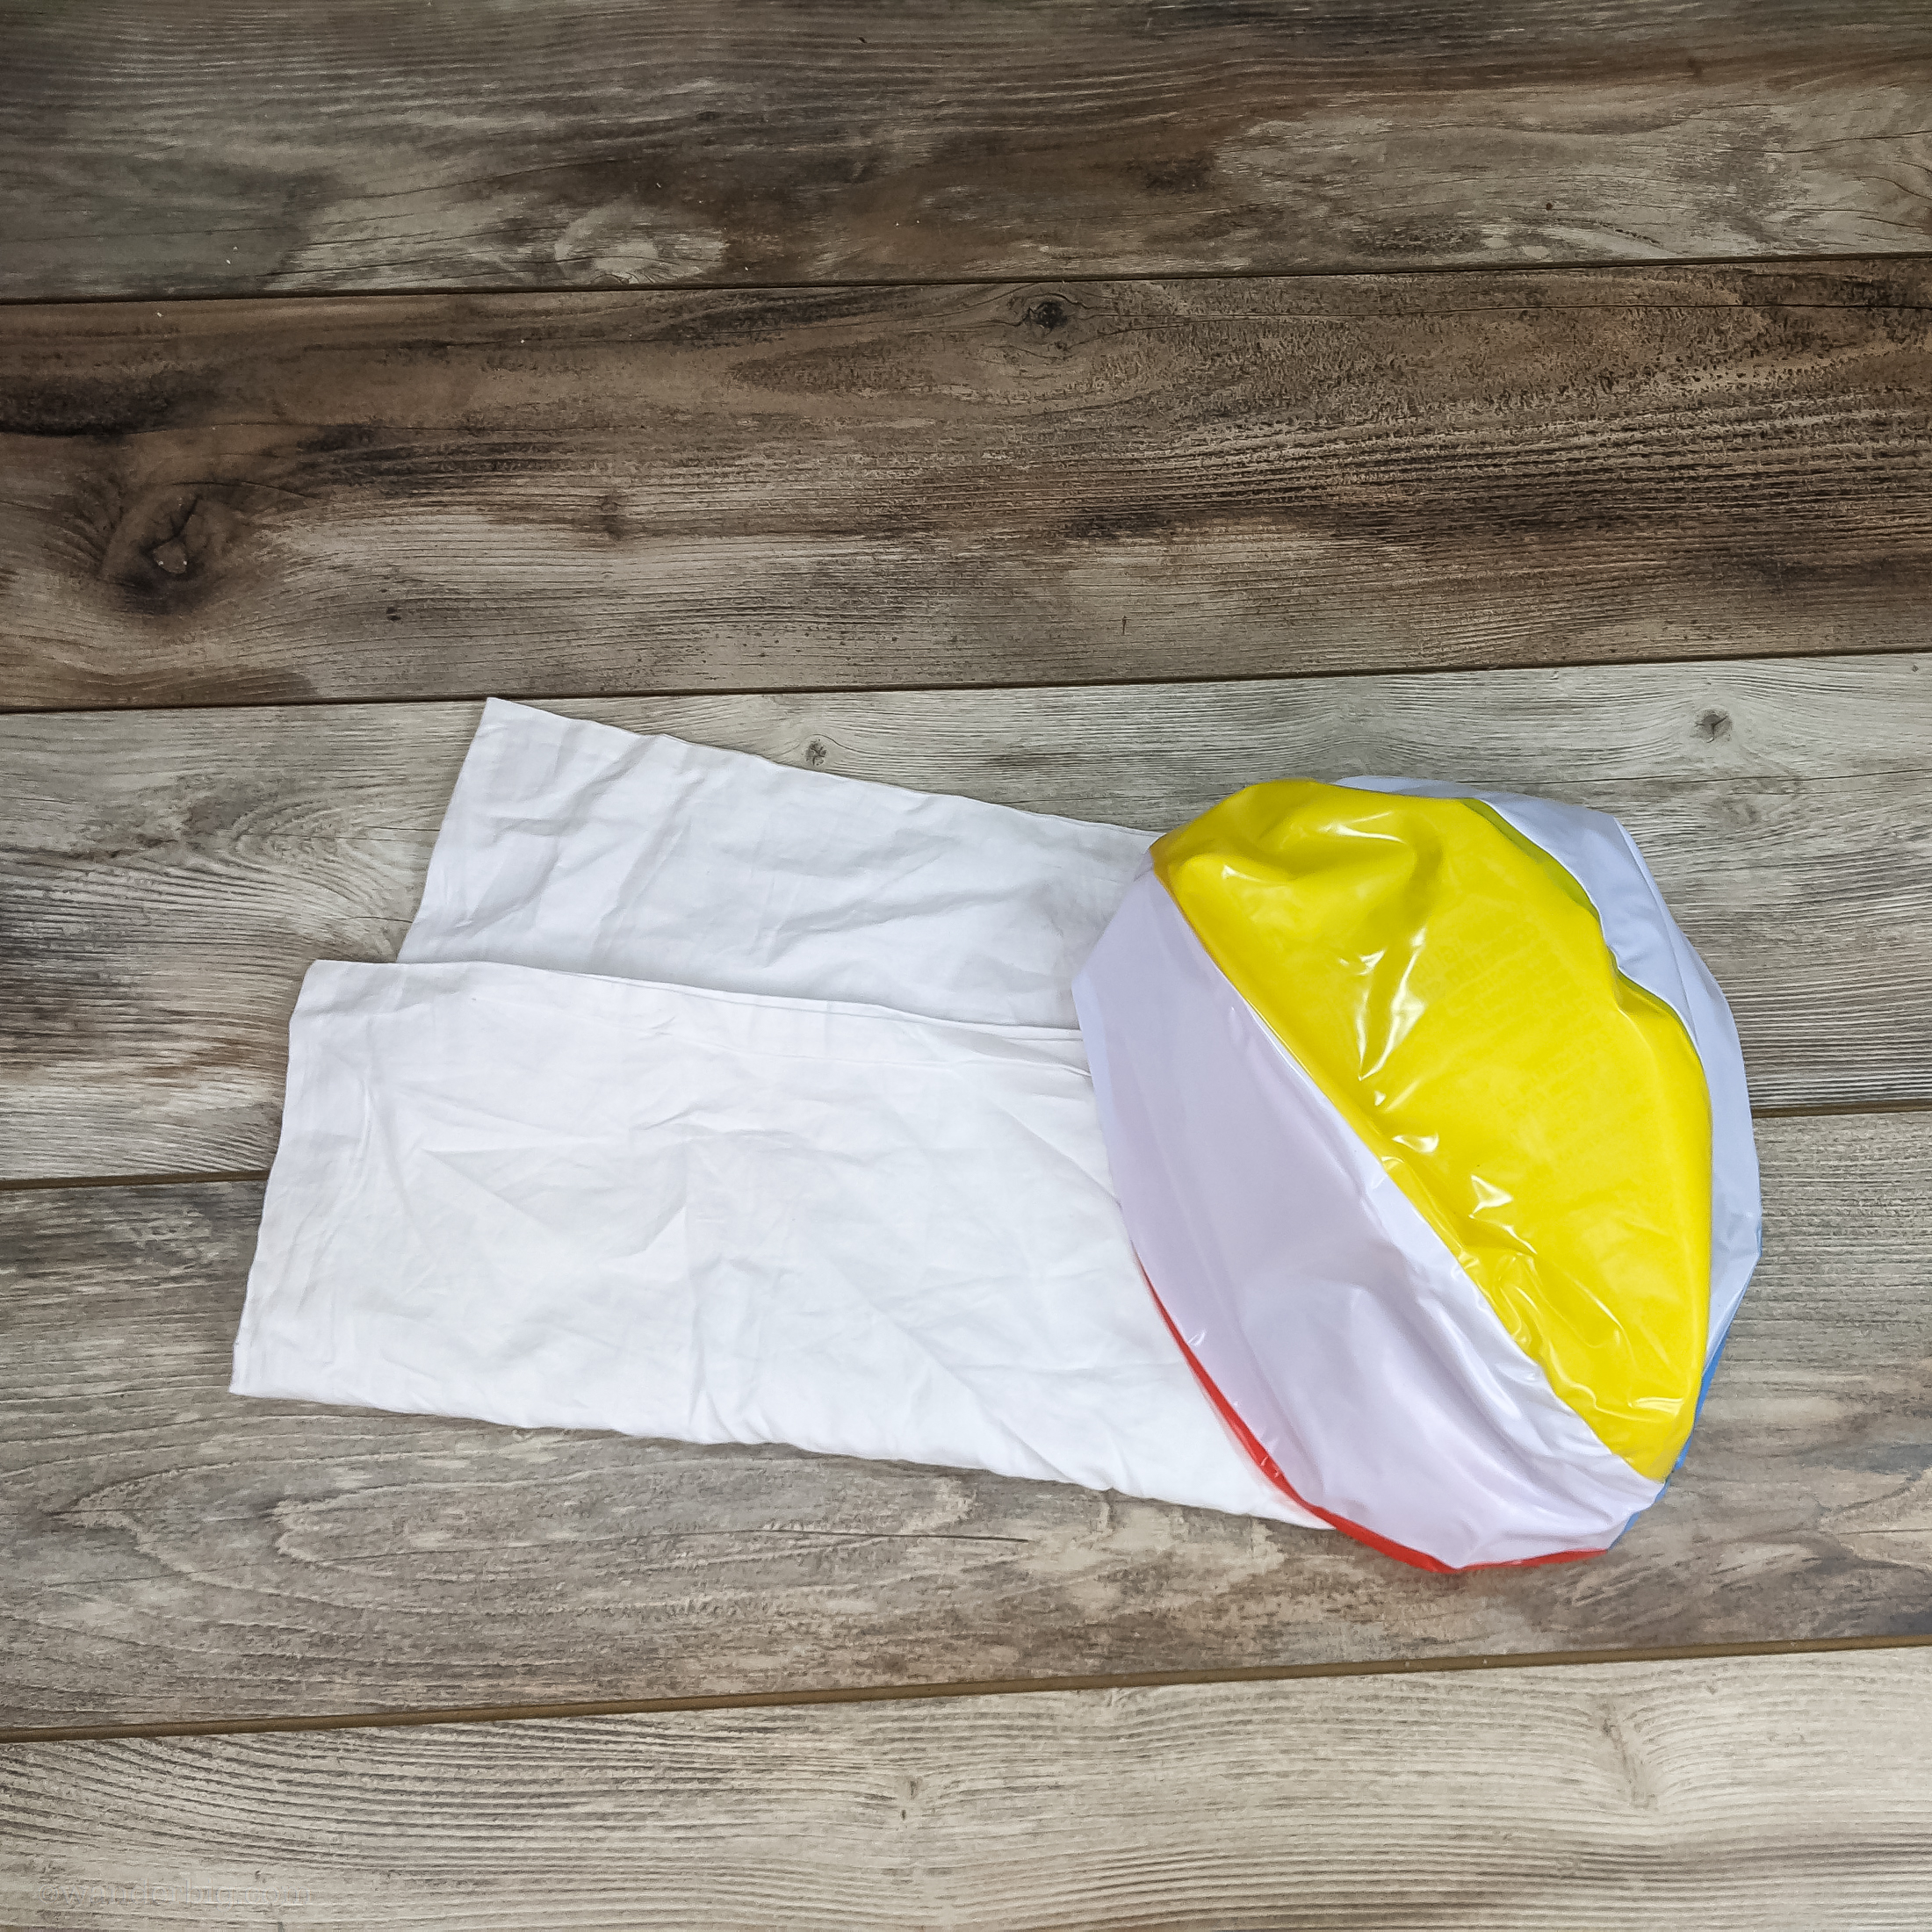 This image shows the two items you'll need to make a diy travel pillow: a zippered pillowcase and a uninflated beach ball.